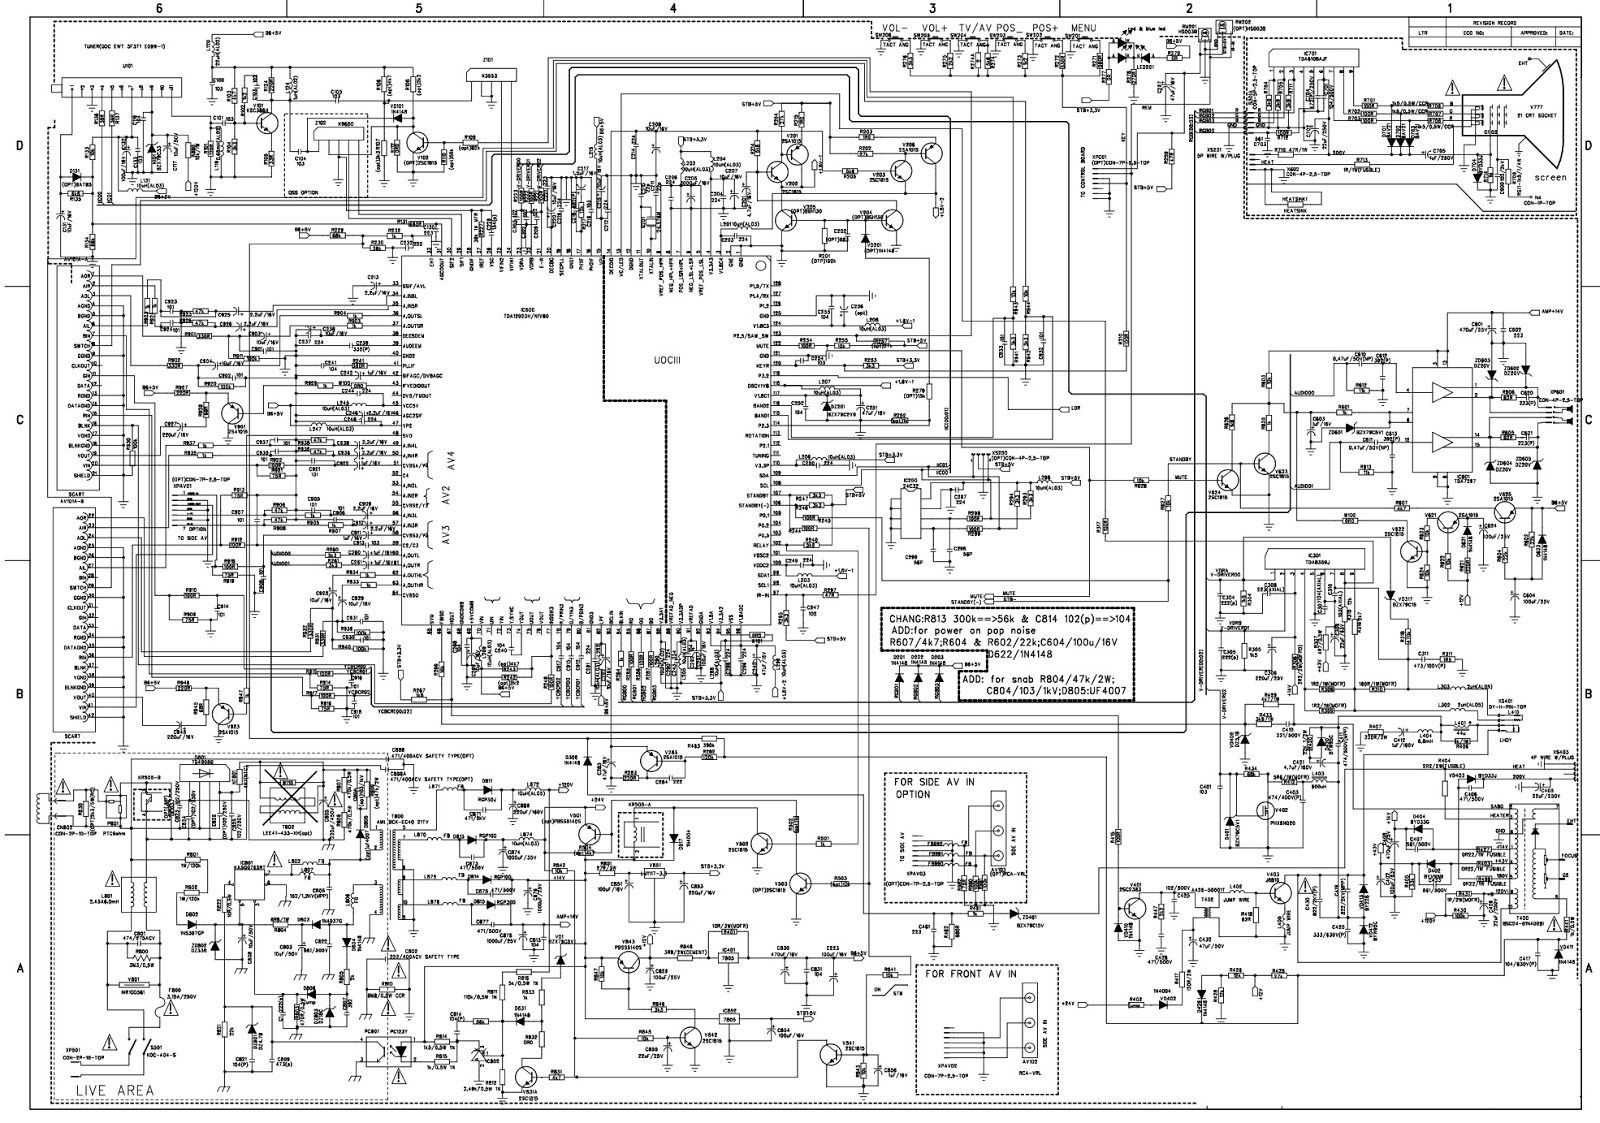 Asrock Wiring Diagram | Wiring Diagram Database